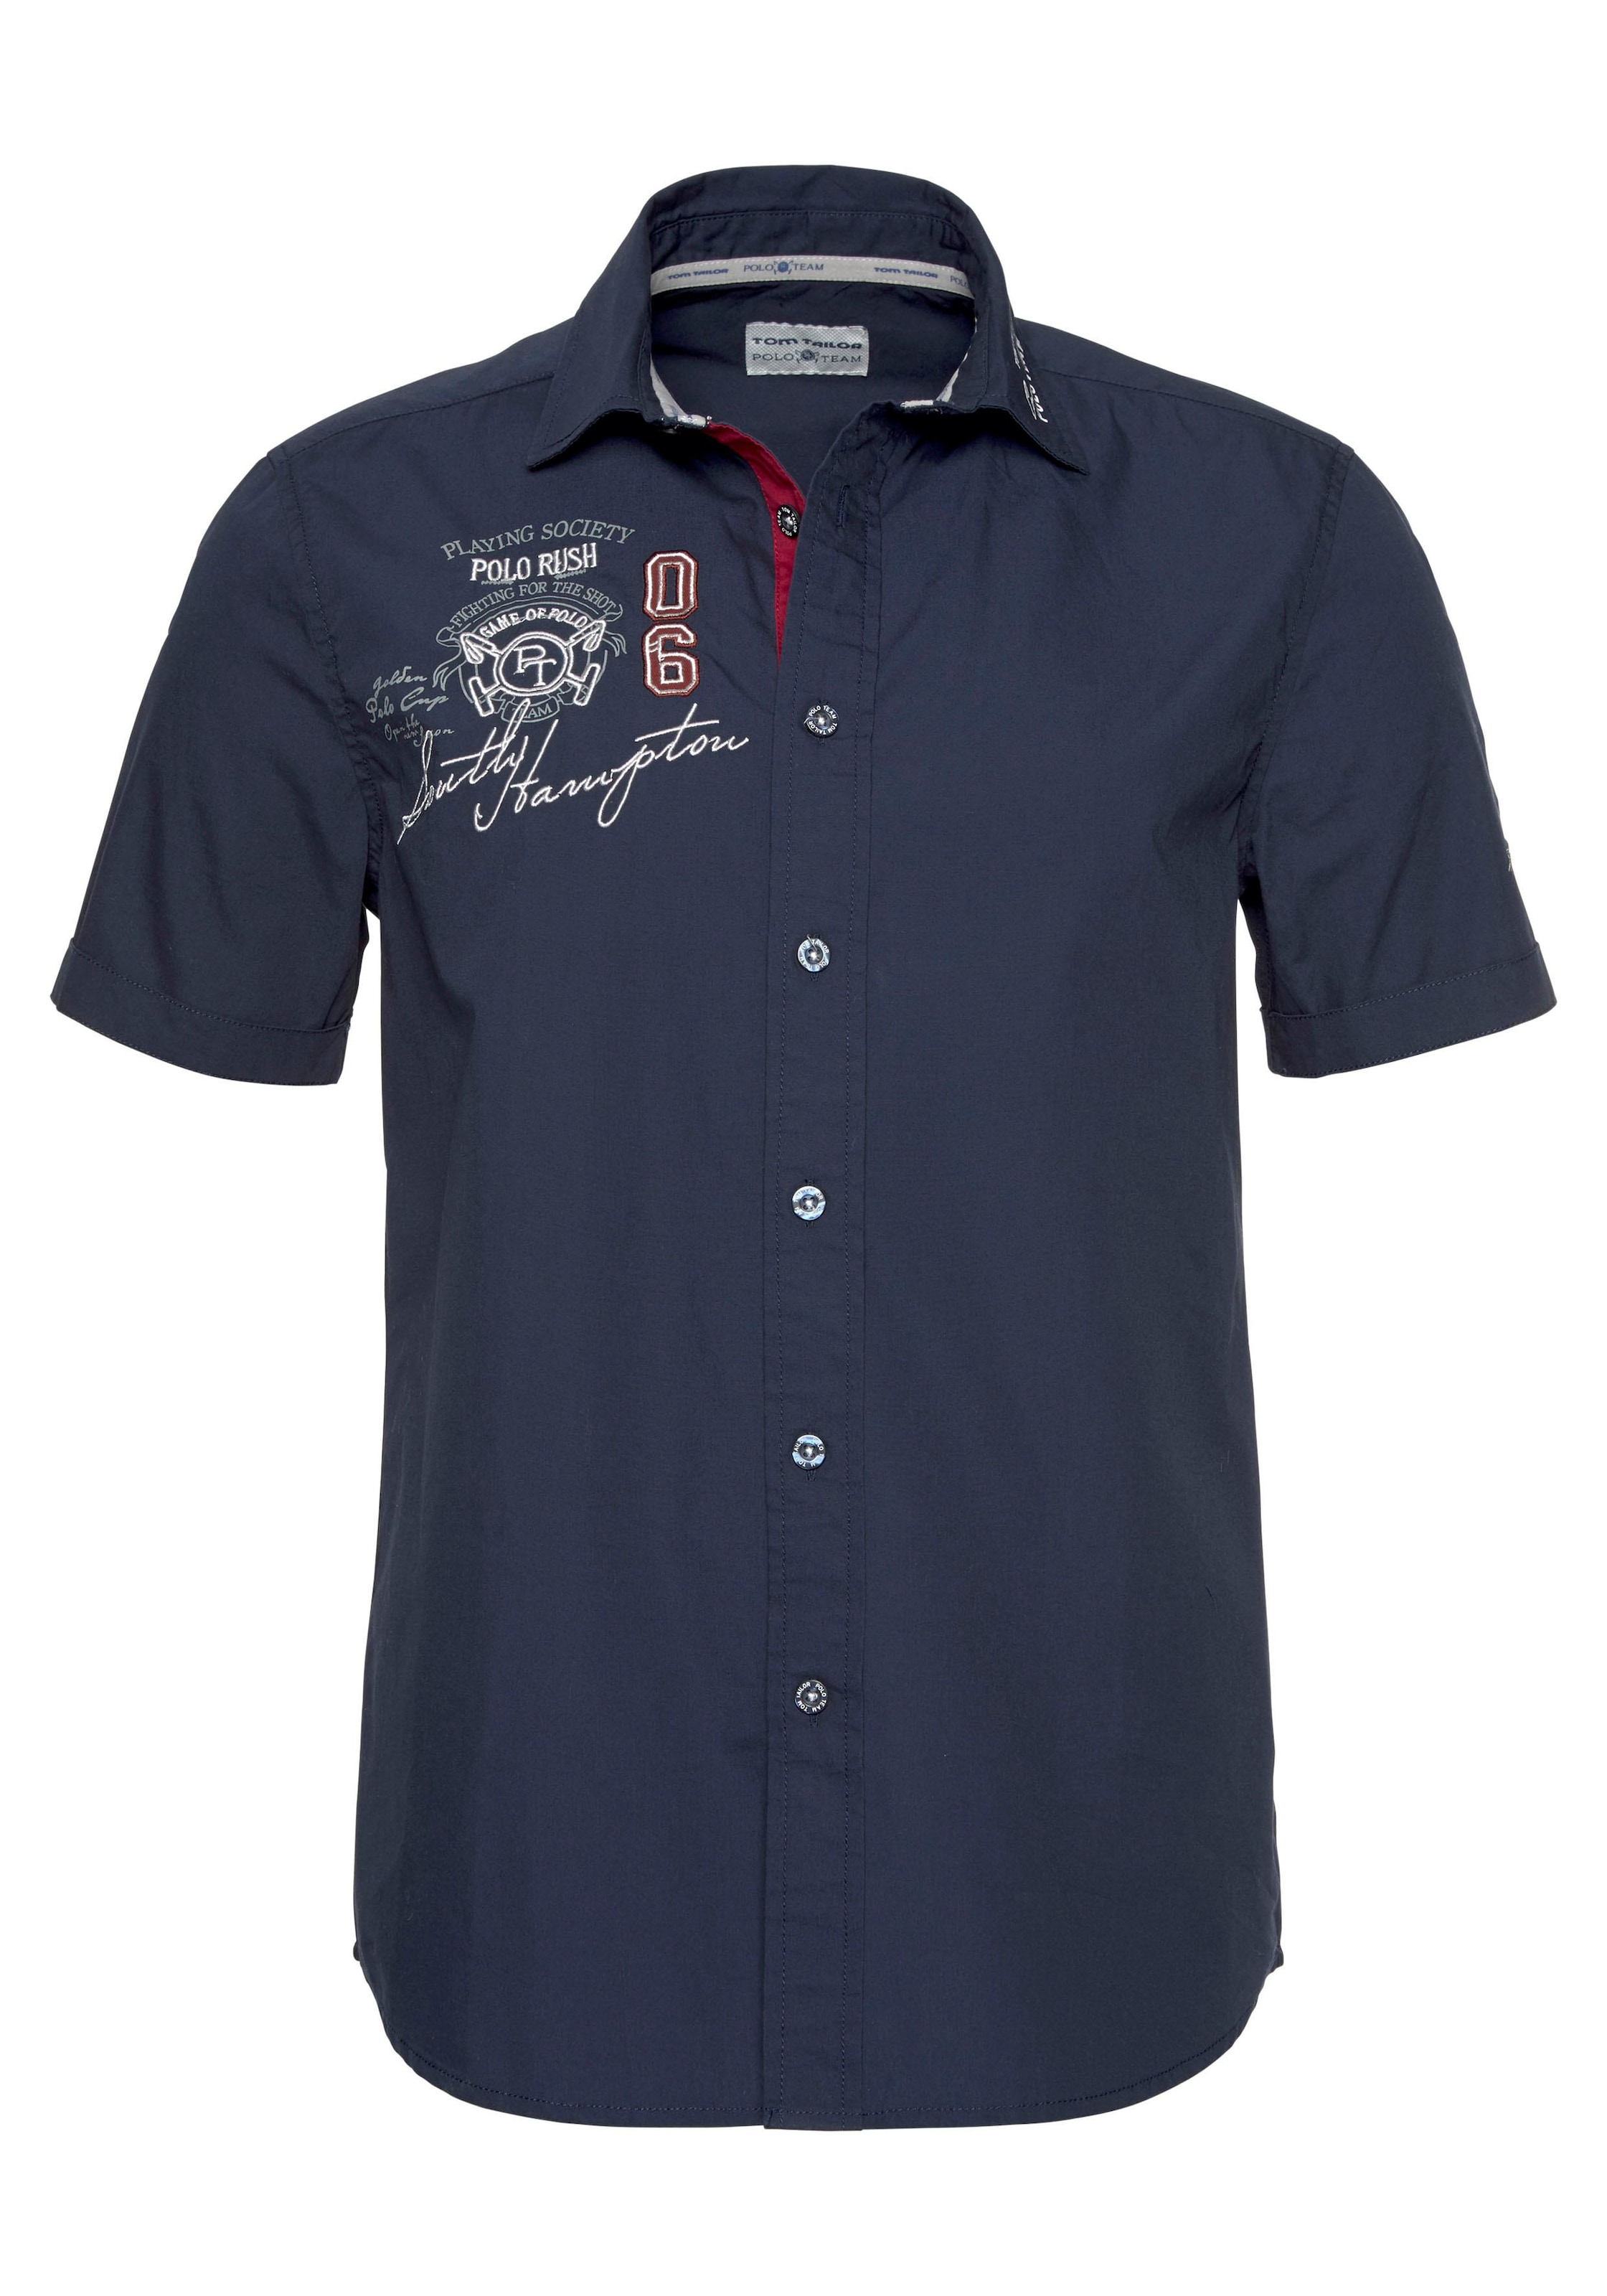 TOM TAILOR Polo Team Kurzarmhemd kaufen » BAUR